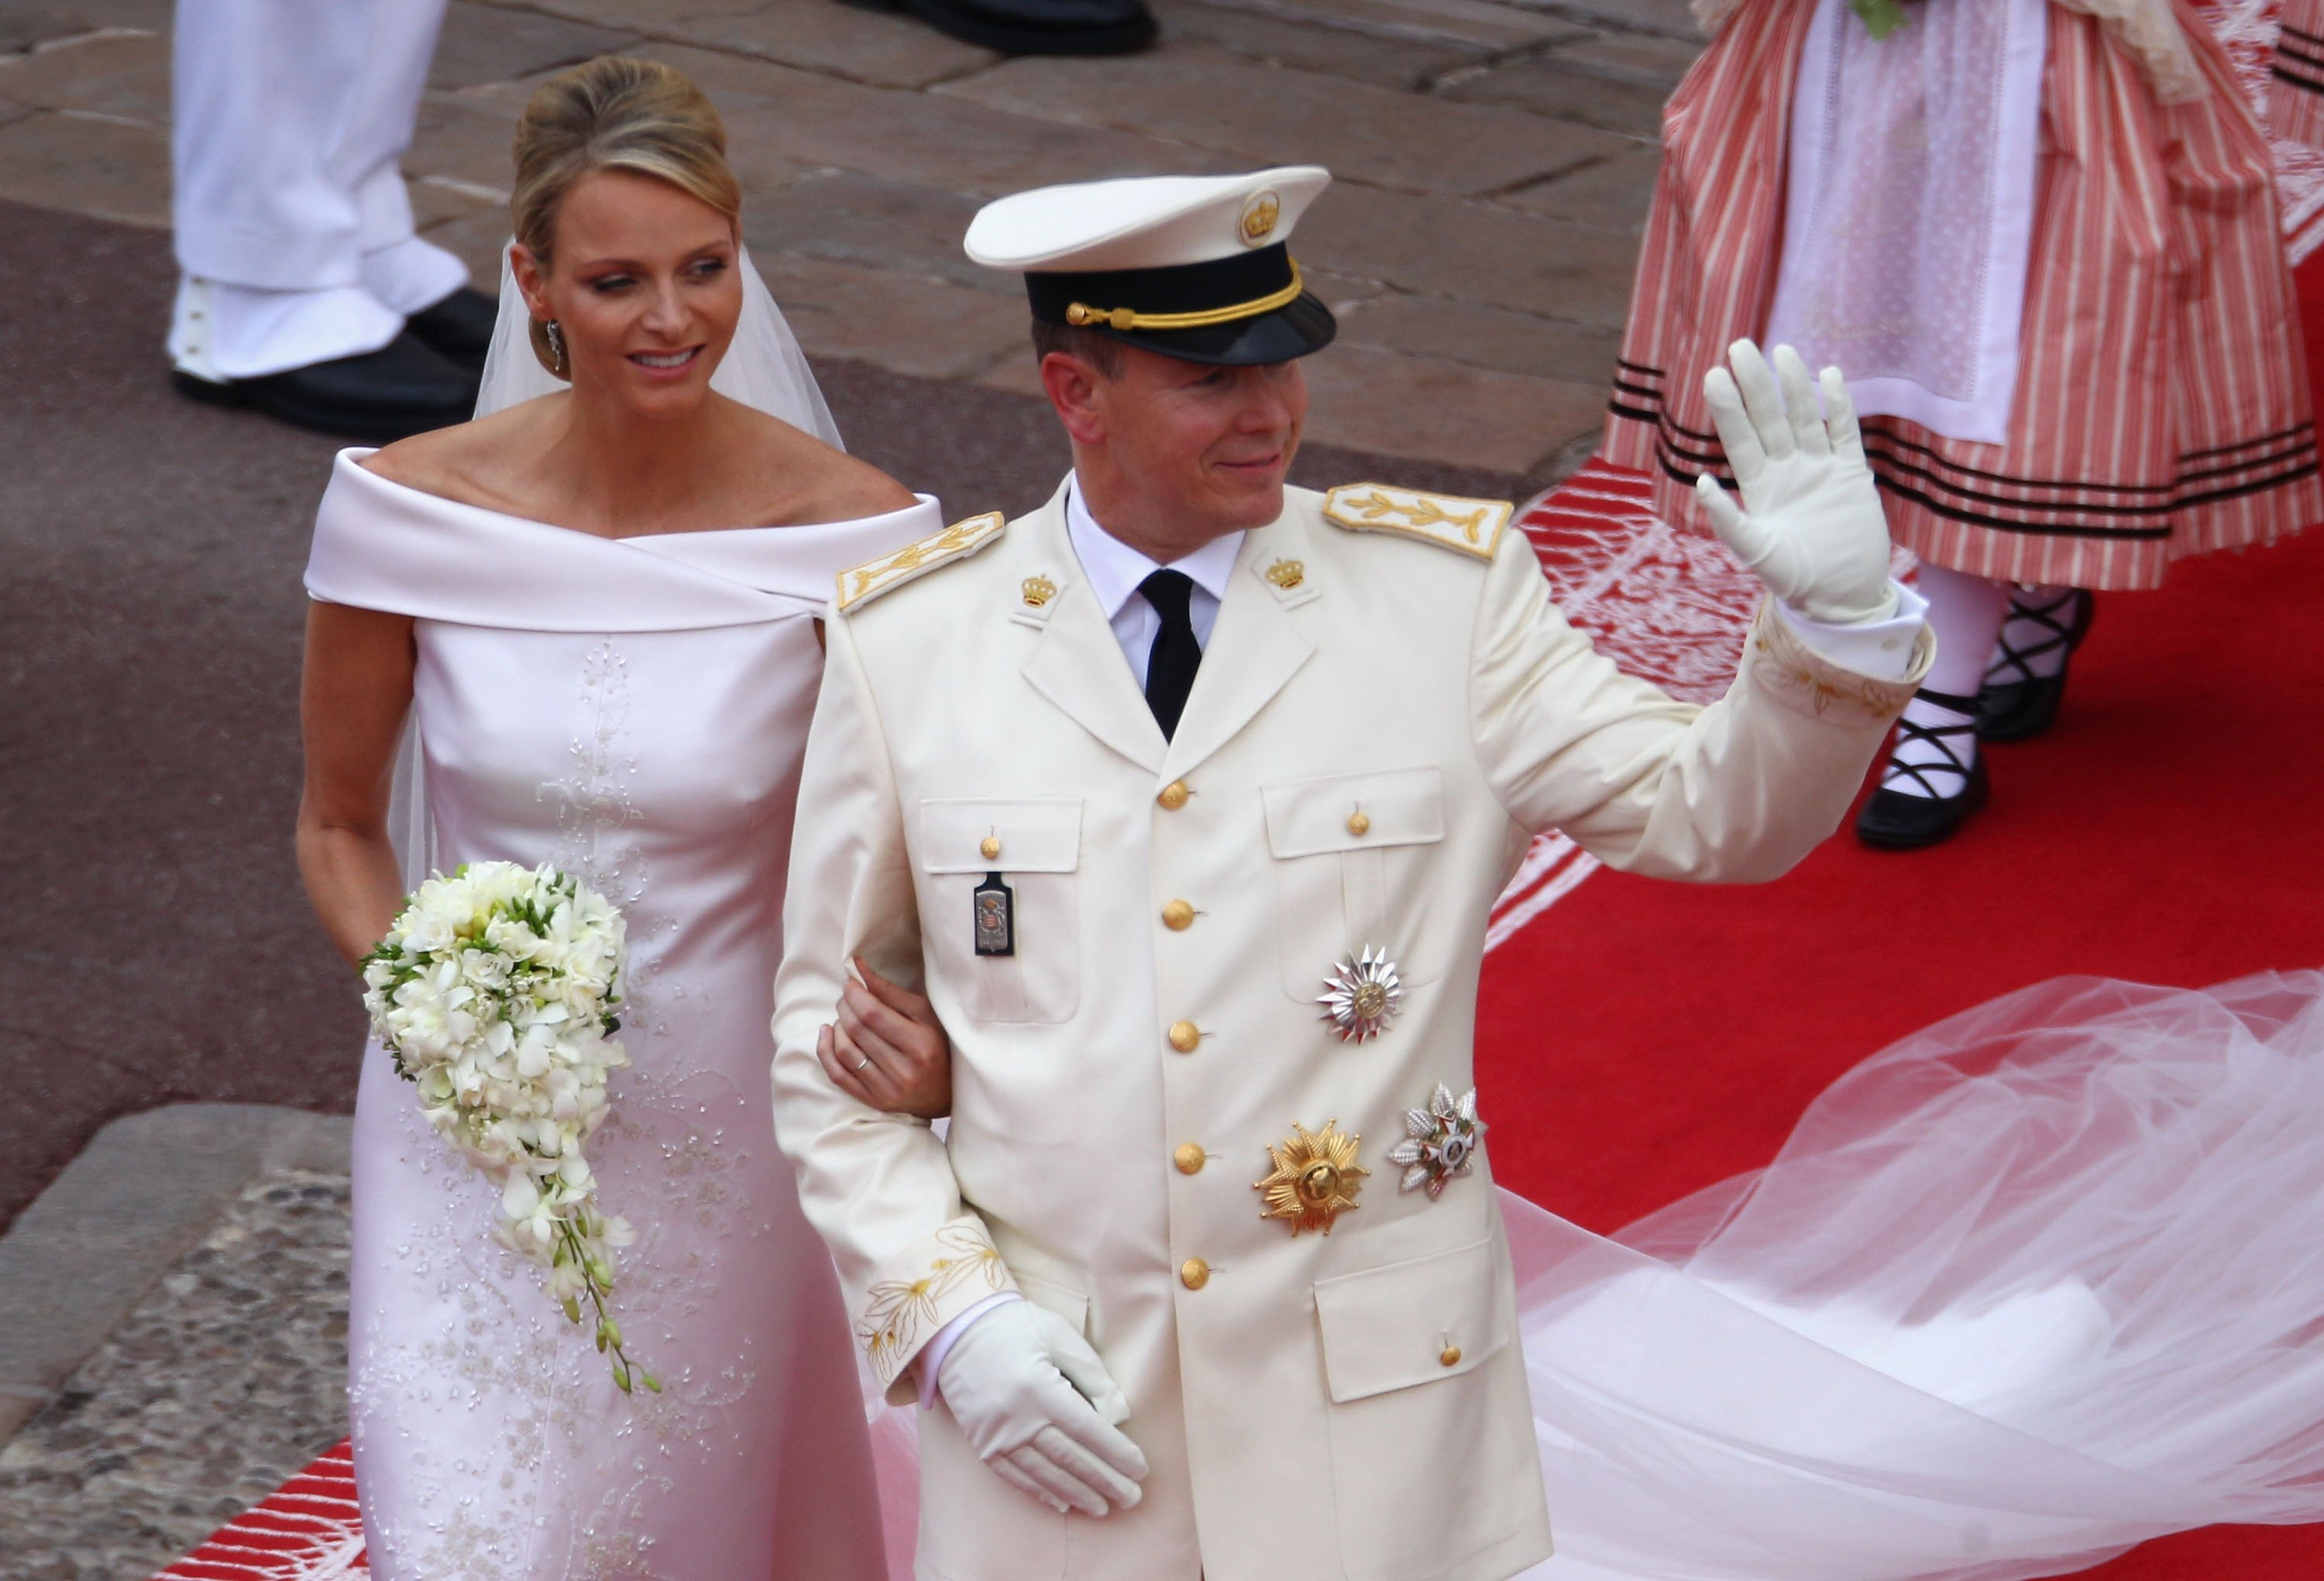 Princess Charlene and Prince Albert II of Monaco on their wedding day, July, 2011. | Photo: Getty Images.